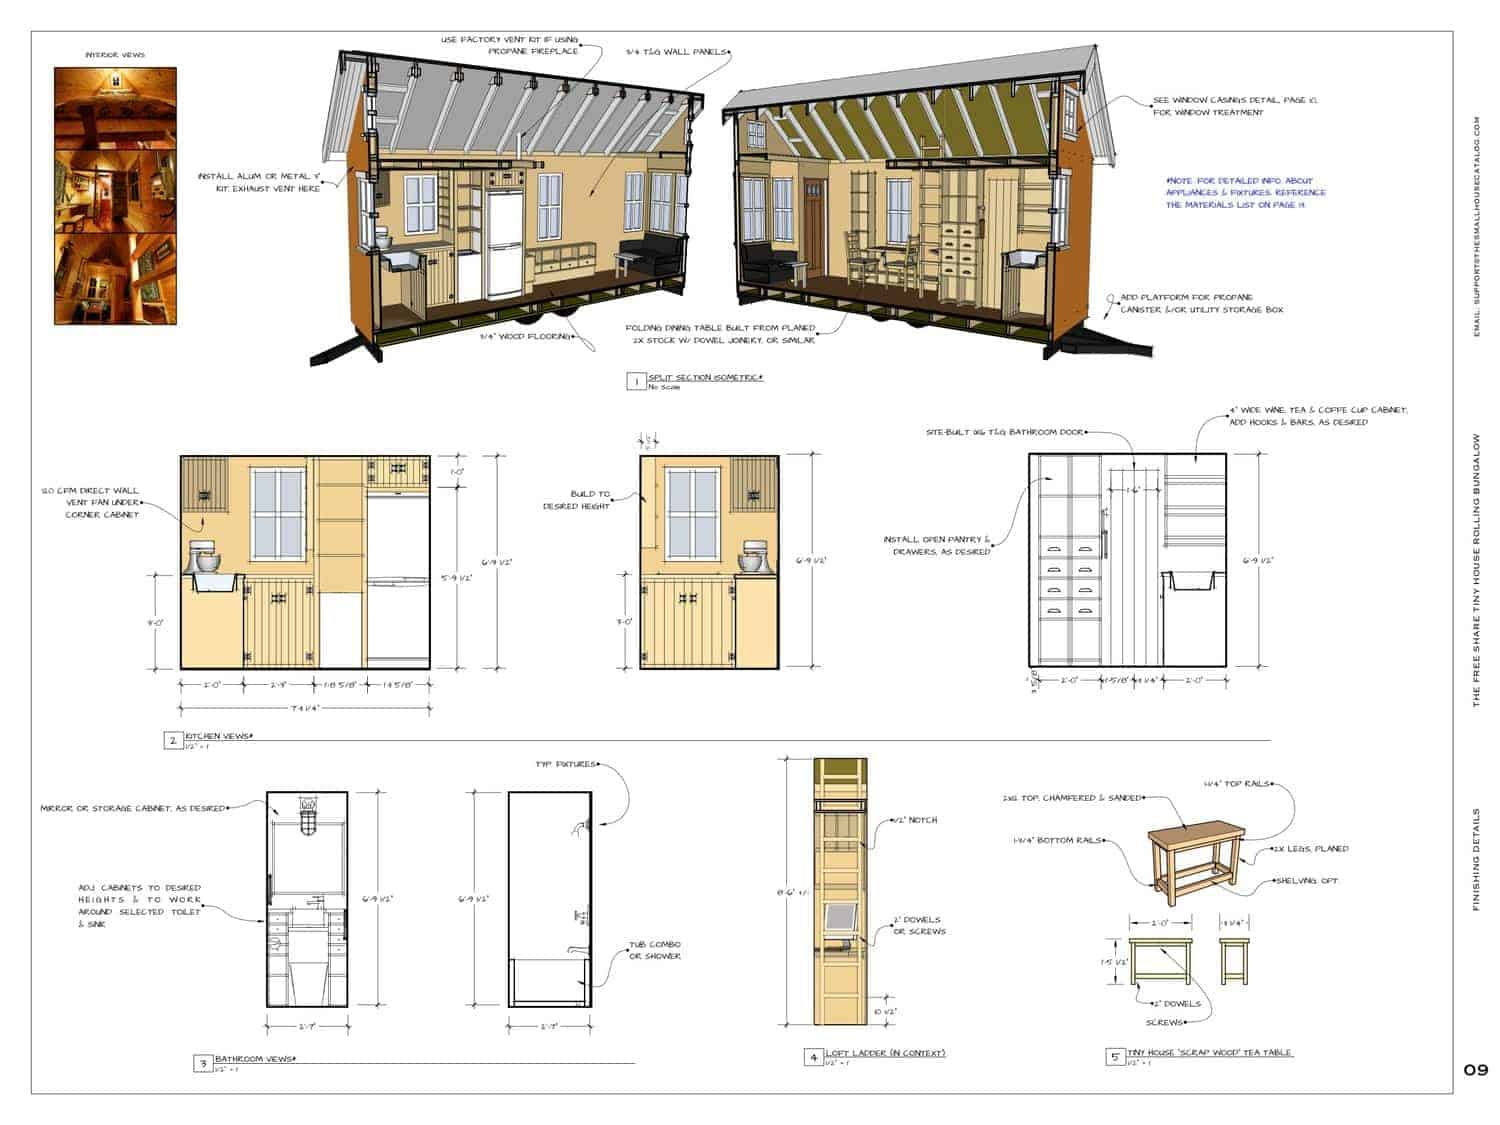 Get free plans to build this adorable tiny bungalow Small building plan